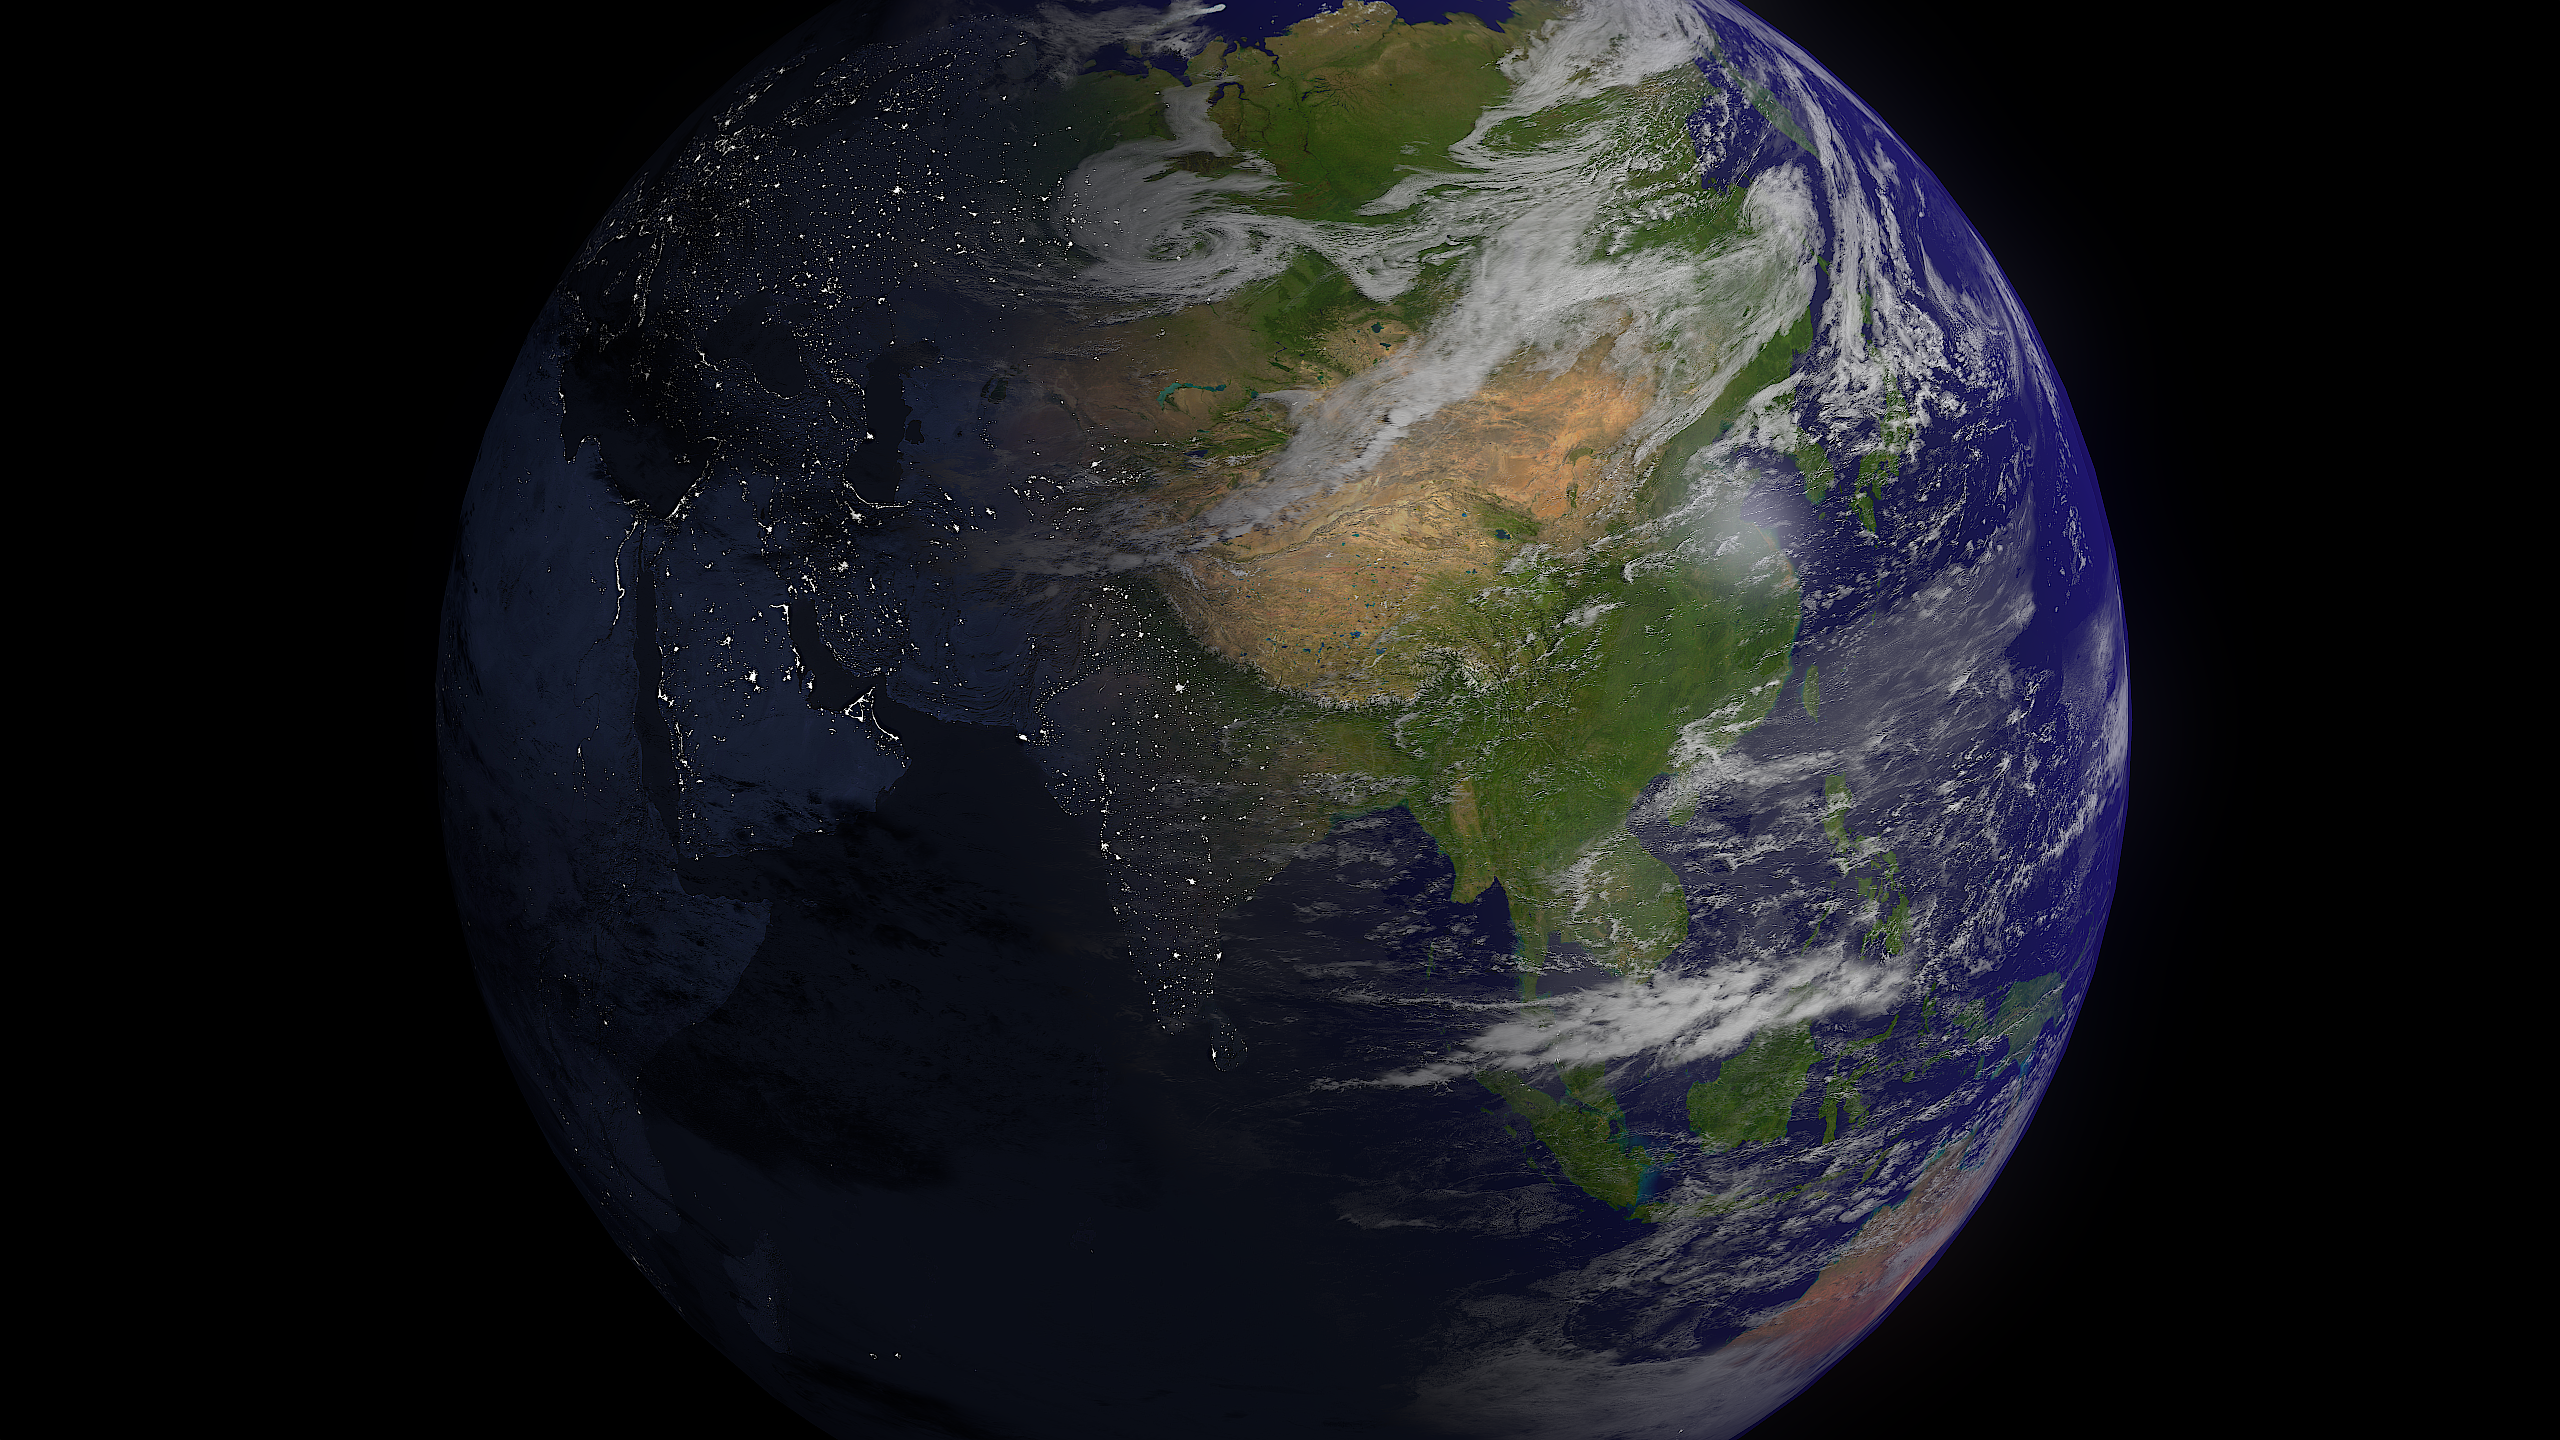 Earth 21k 3d model 3ds fbx blend dae obj 210246